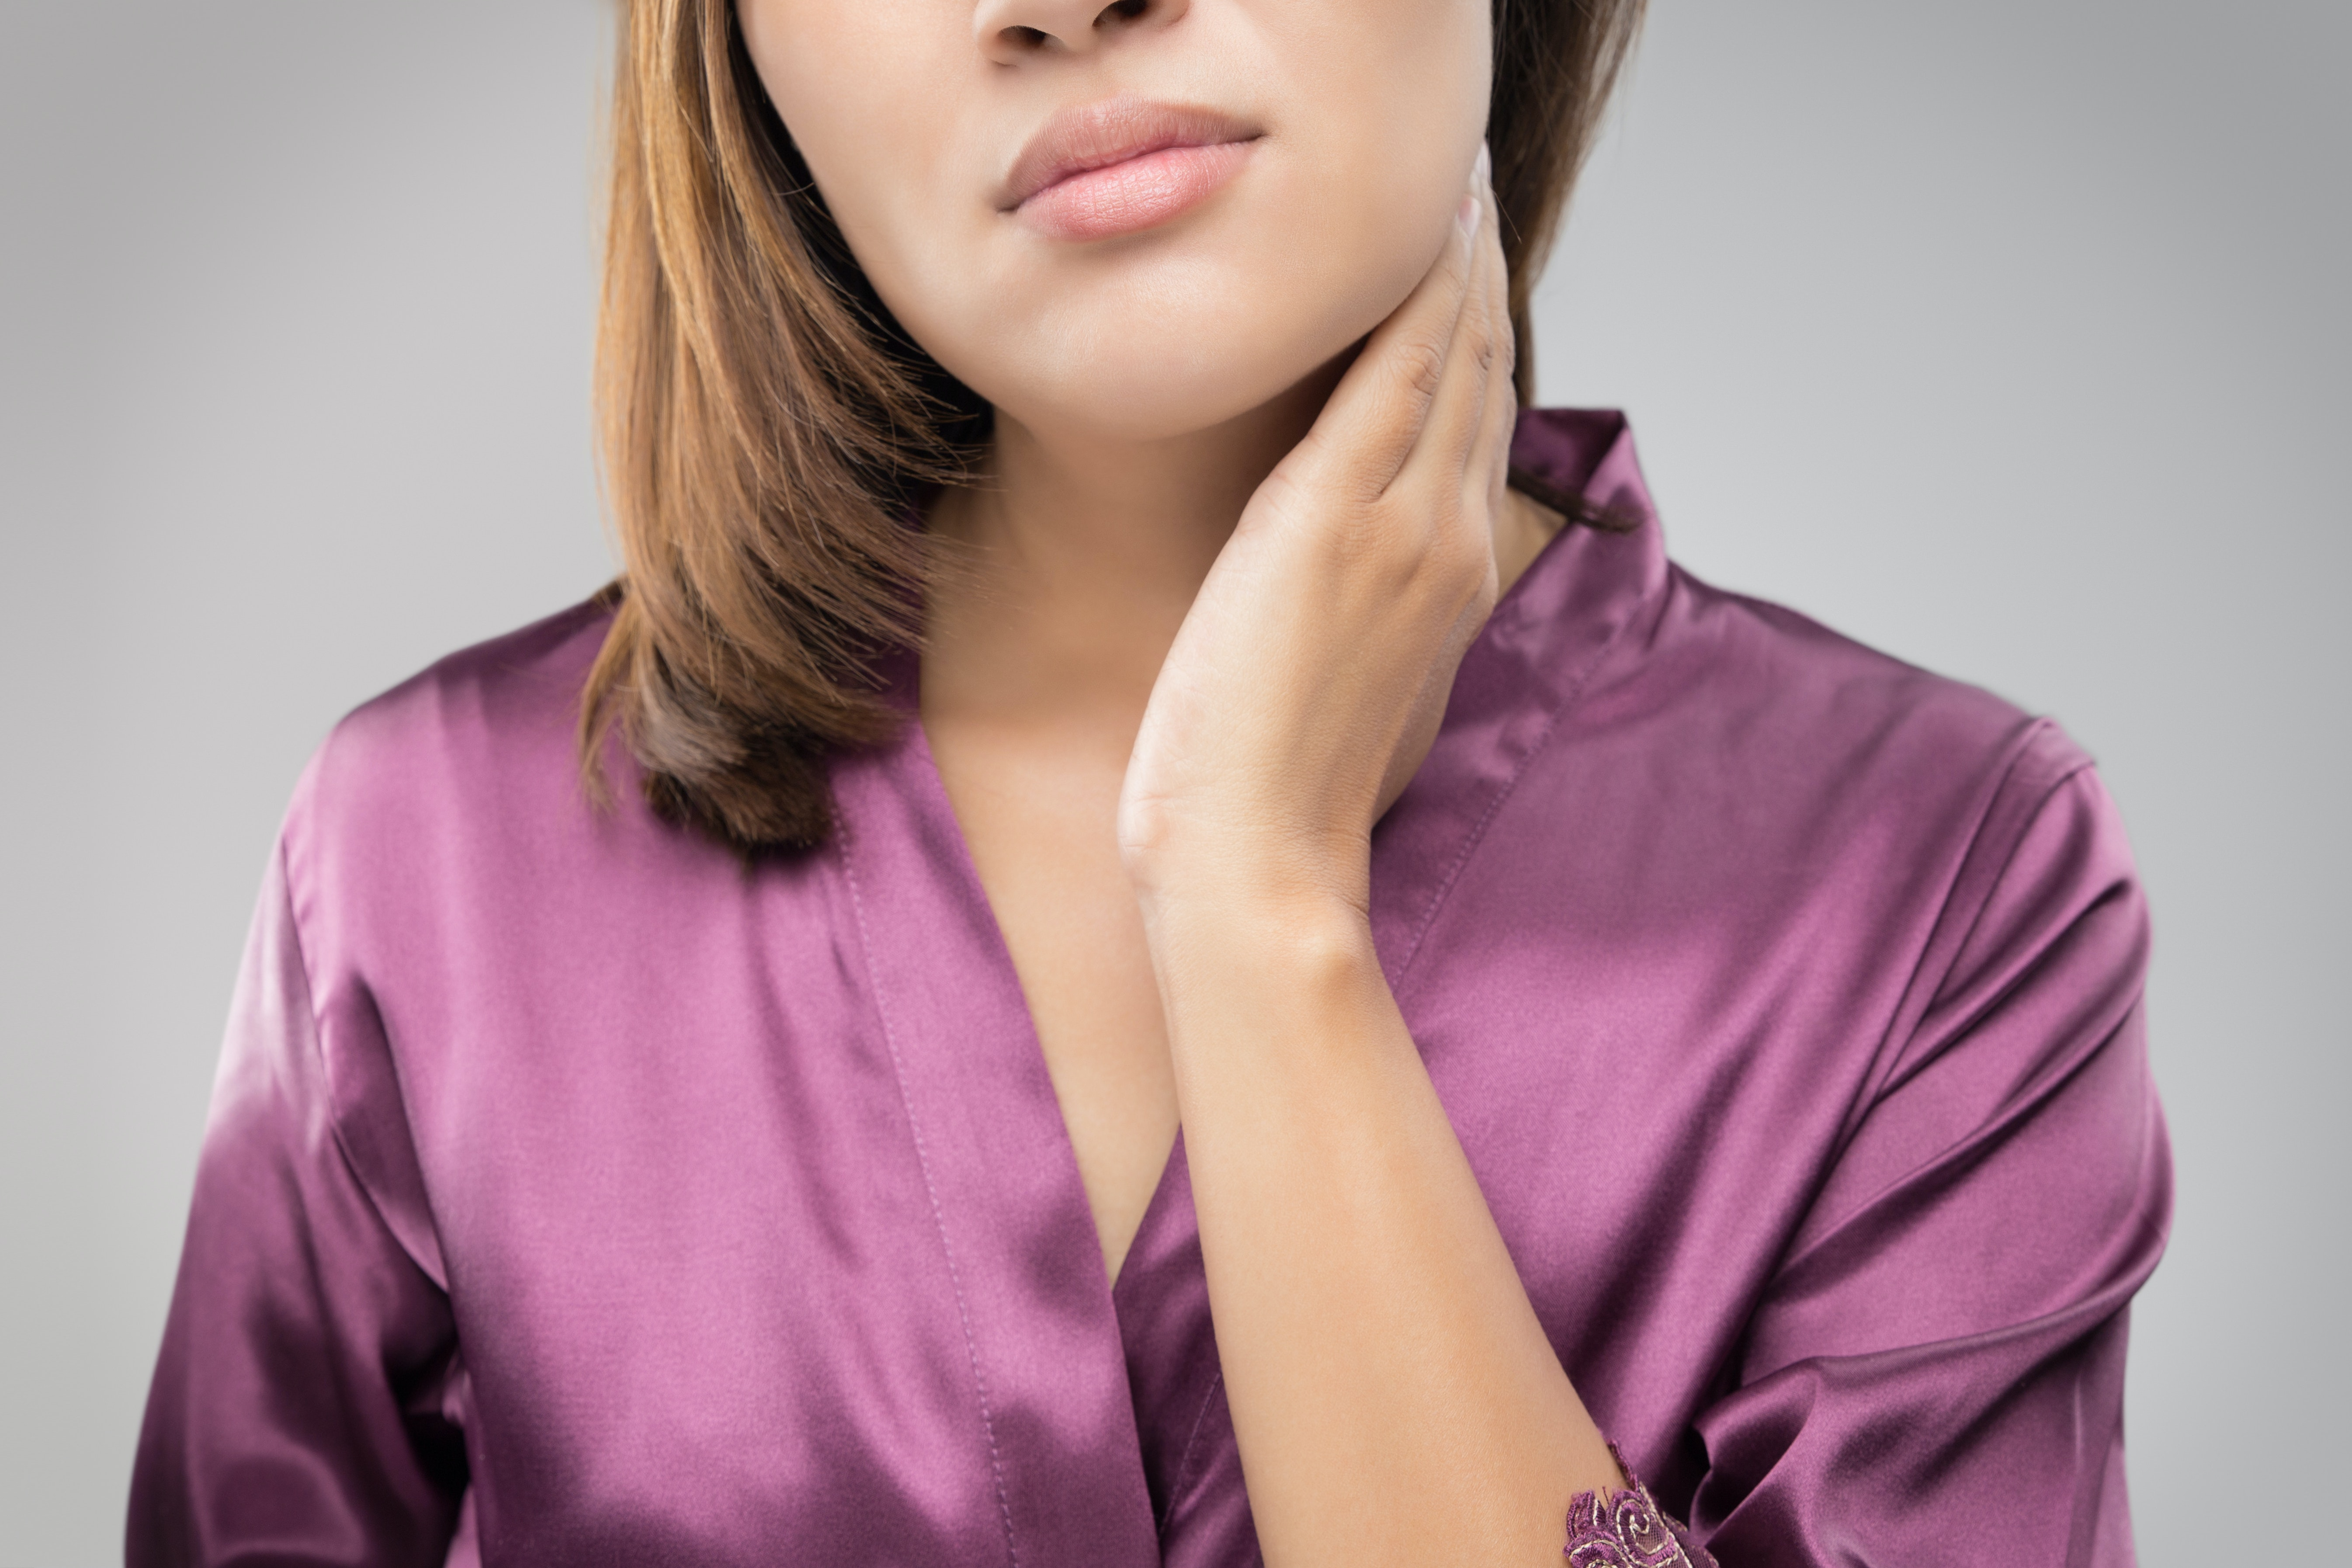 An image depicting a person suffering from swollen neck symptoms